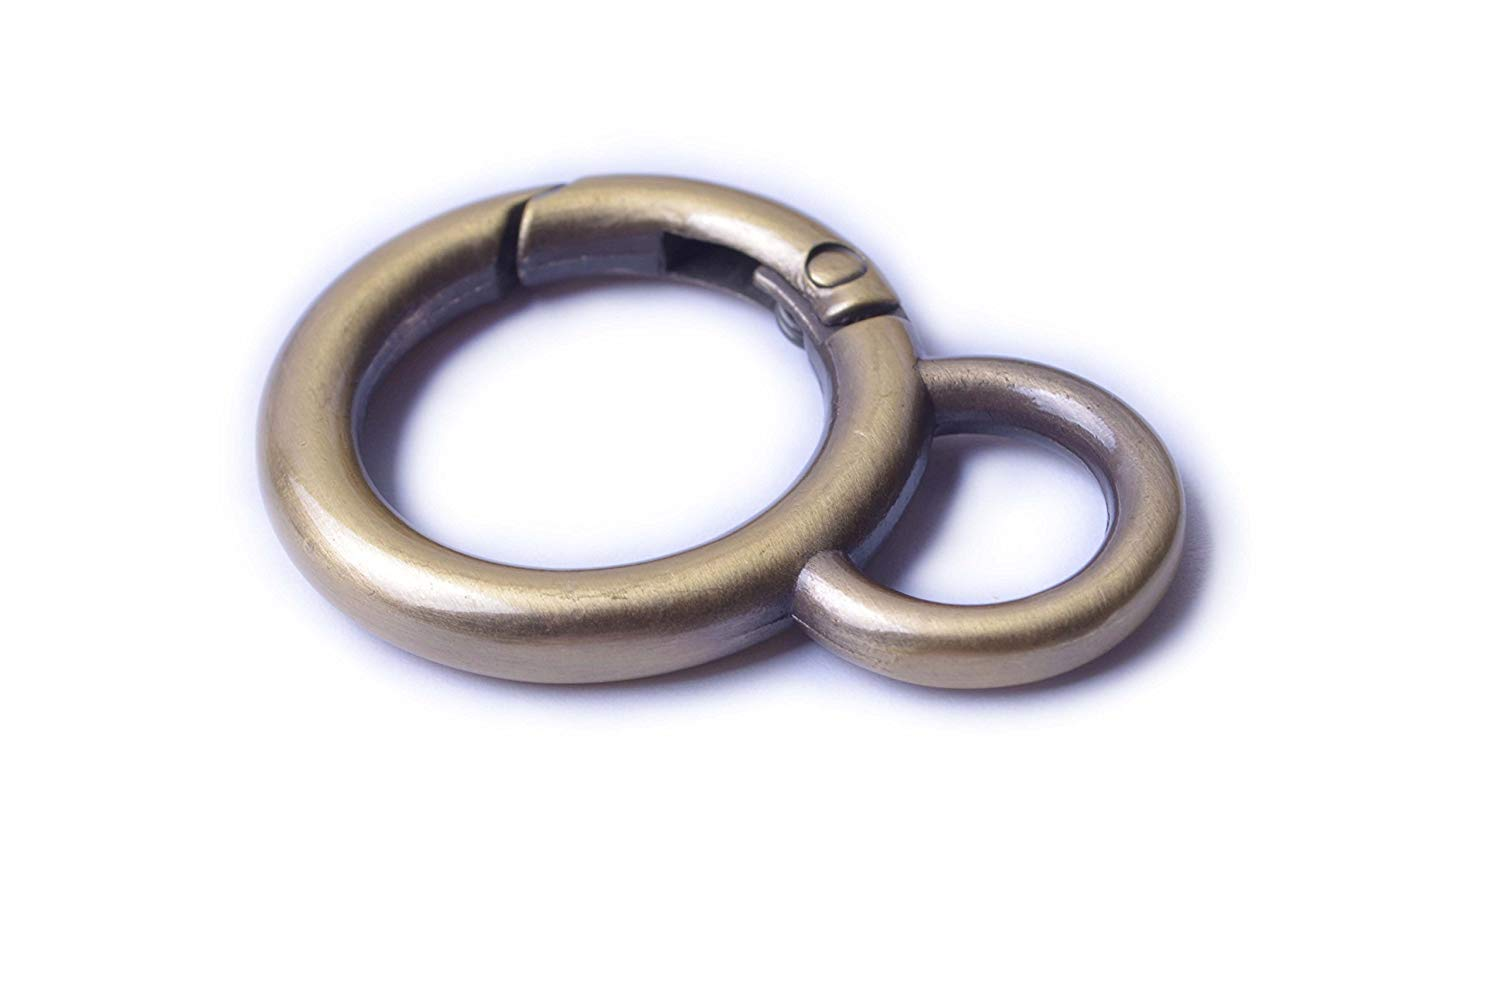 1/'/', Brushed Brass Bobeey 4pcs Rectangular Buckles For purses making,SCREW Rings Buckles Strap Connector Purse Hardware Bag Loop BBC7